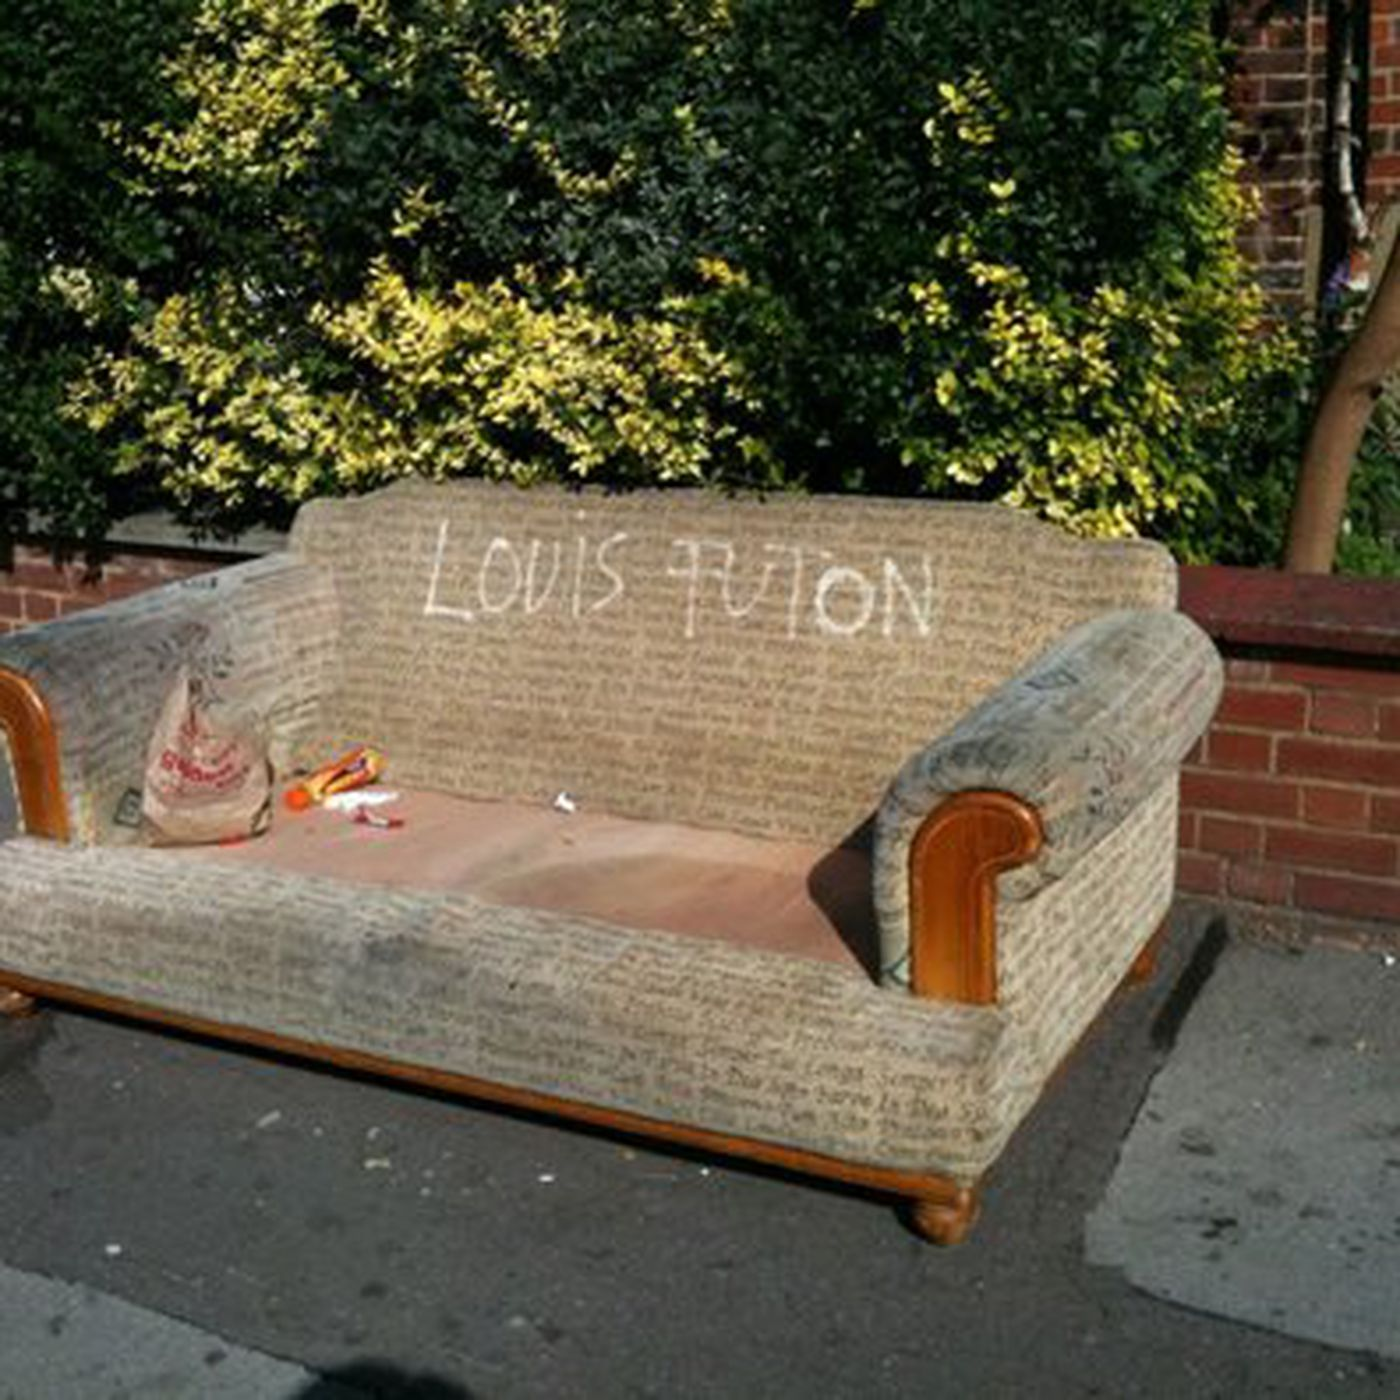 Louis Futon And More Photos From London